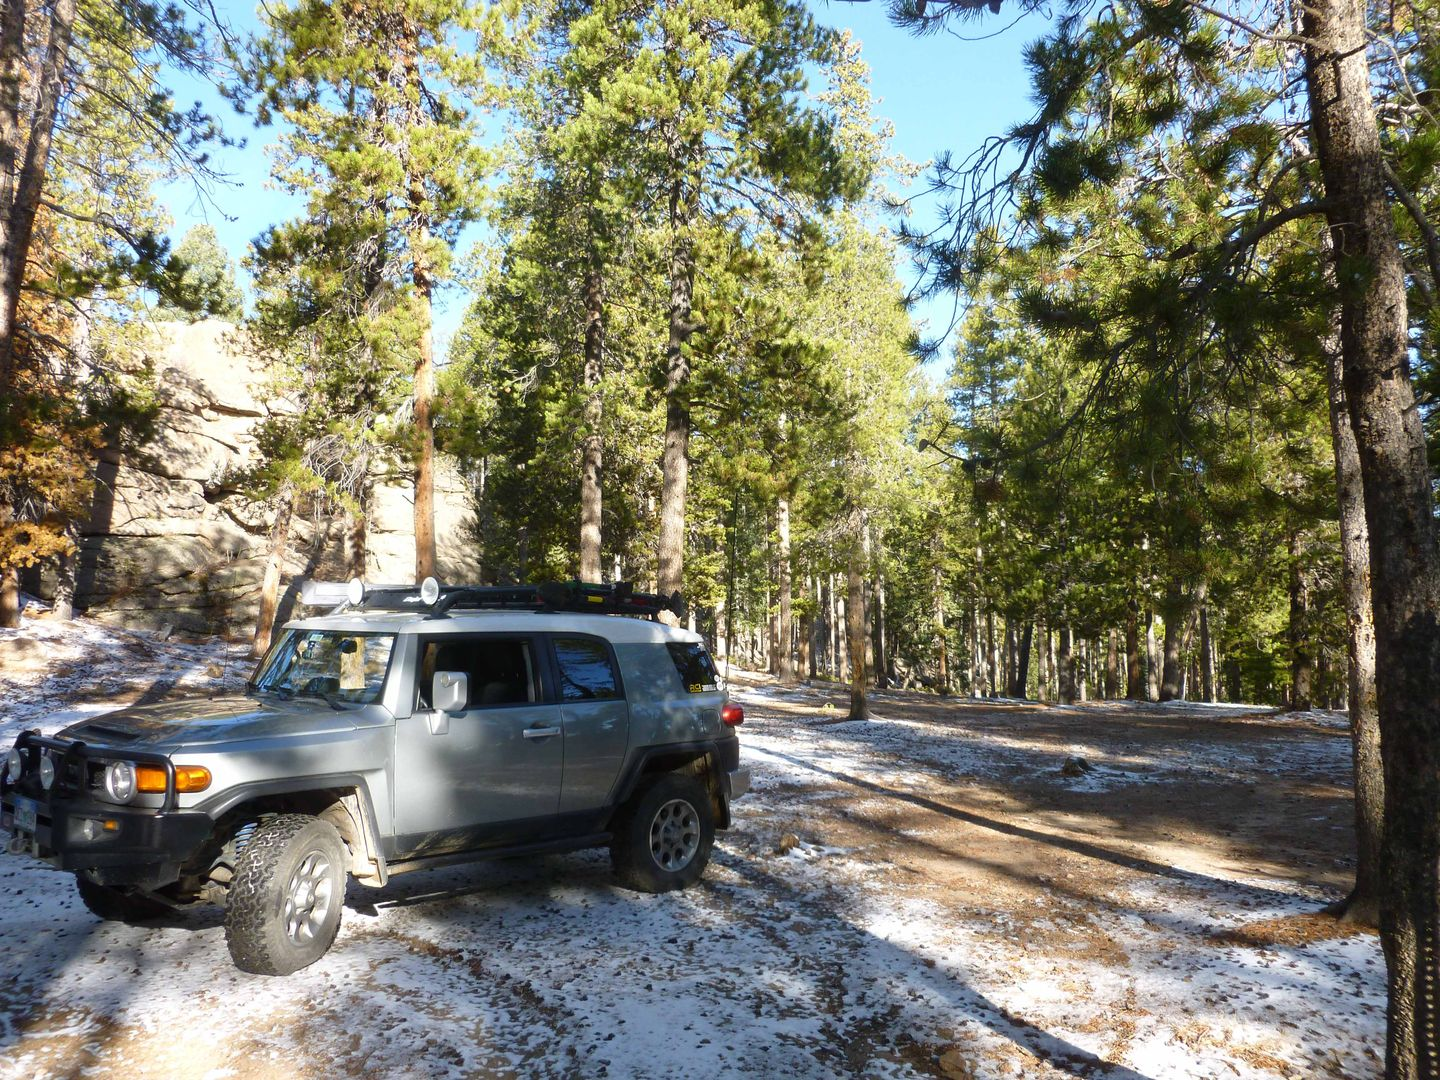 Dakan Road - Waypoint 1: Begin Private Property and NF access